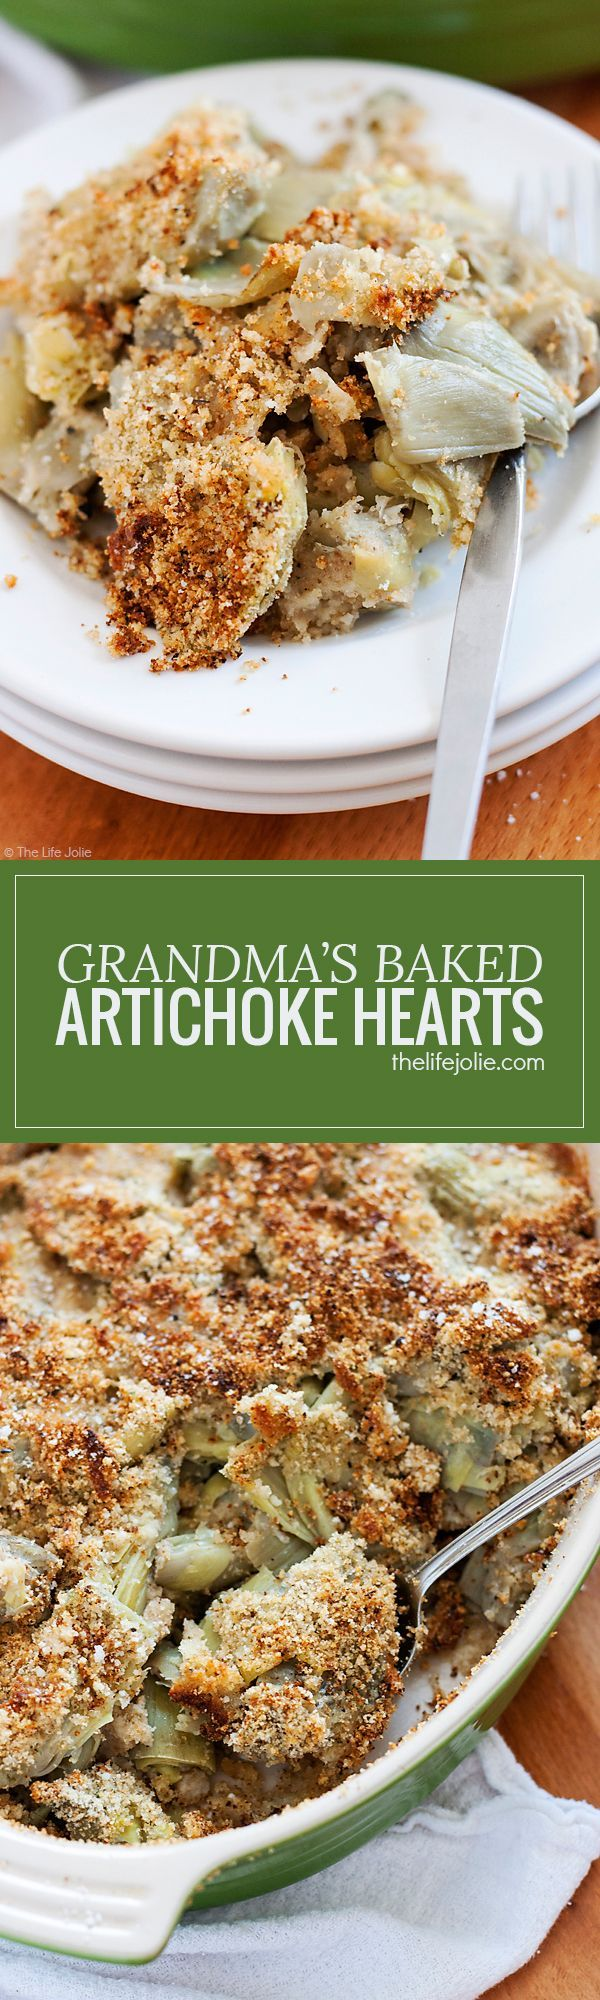 Grandma's Baked Artichoke Hearts is one of my favorite holiday side dishes. This is such an easy recipe and can even be made ahead of time. This is made with Parmesan cheese, bread crumbs and garlic powder and is a delicious addition to your Thanksgiving (Vegan Easy Nutritional Yeast)